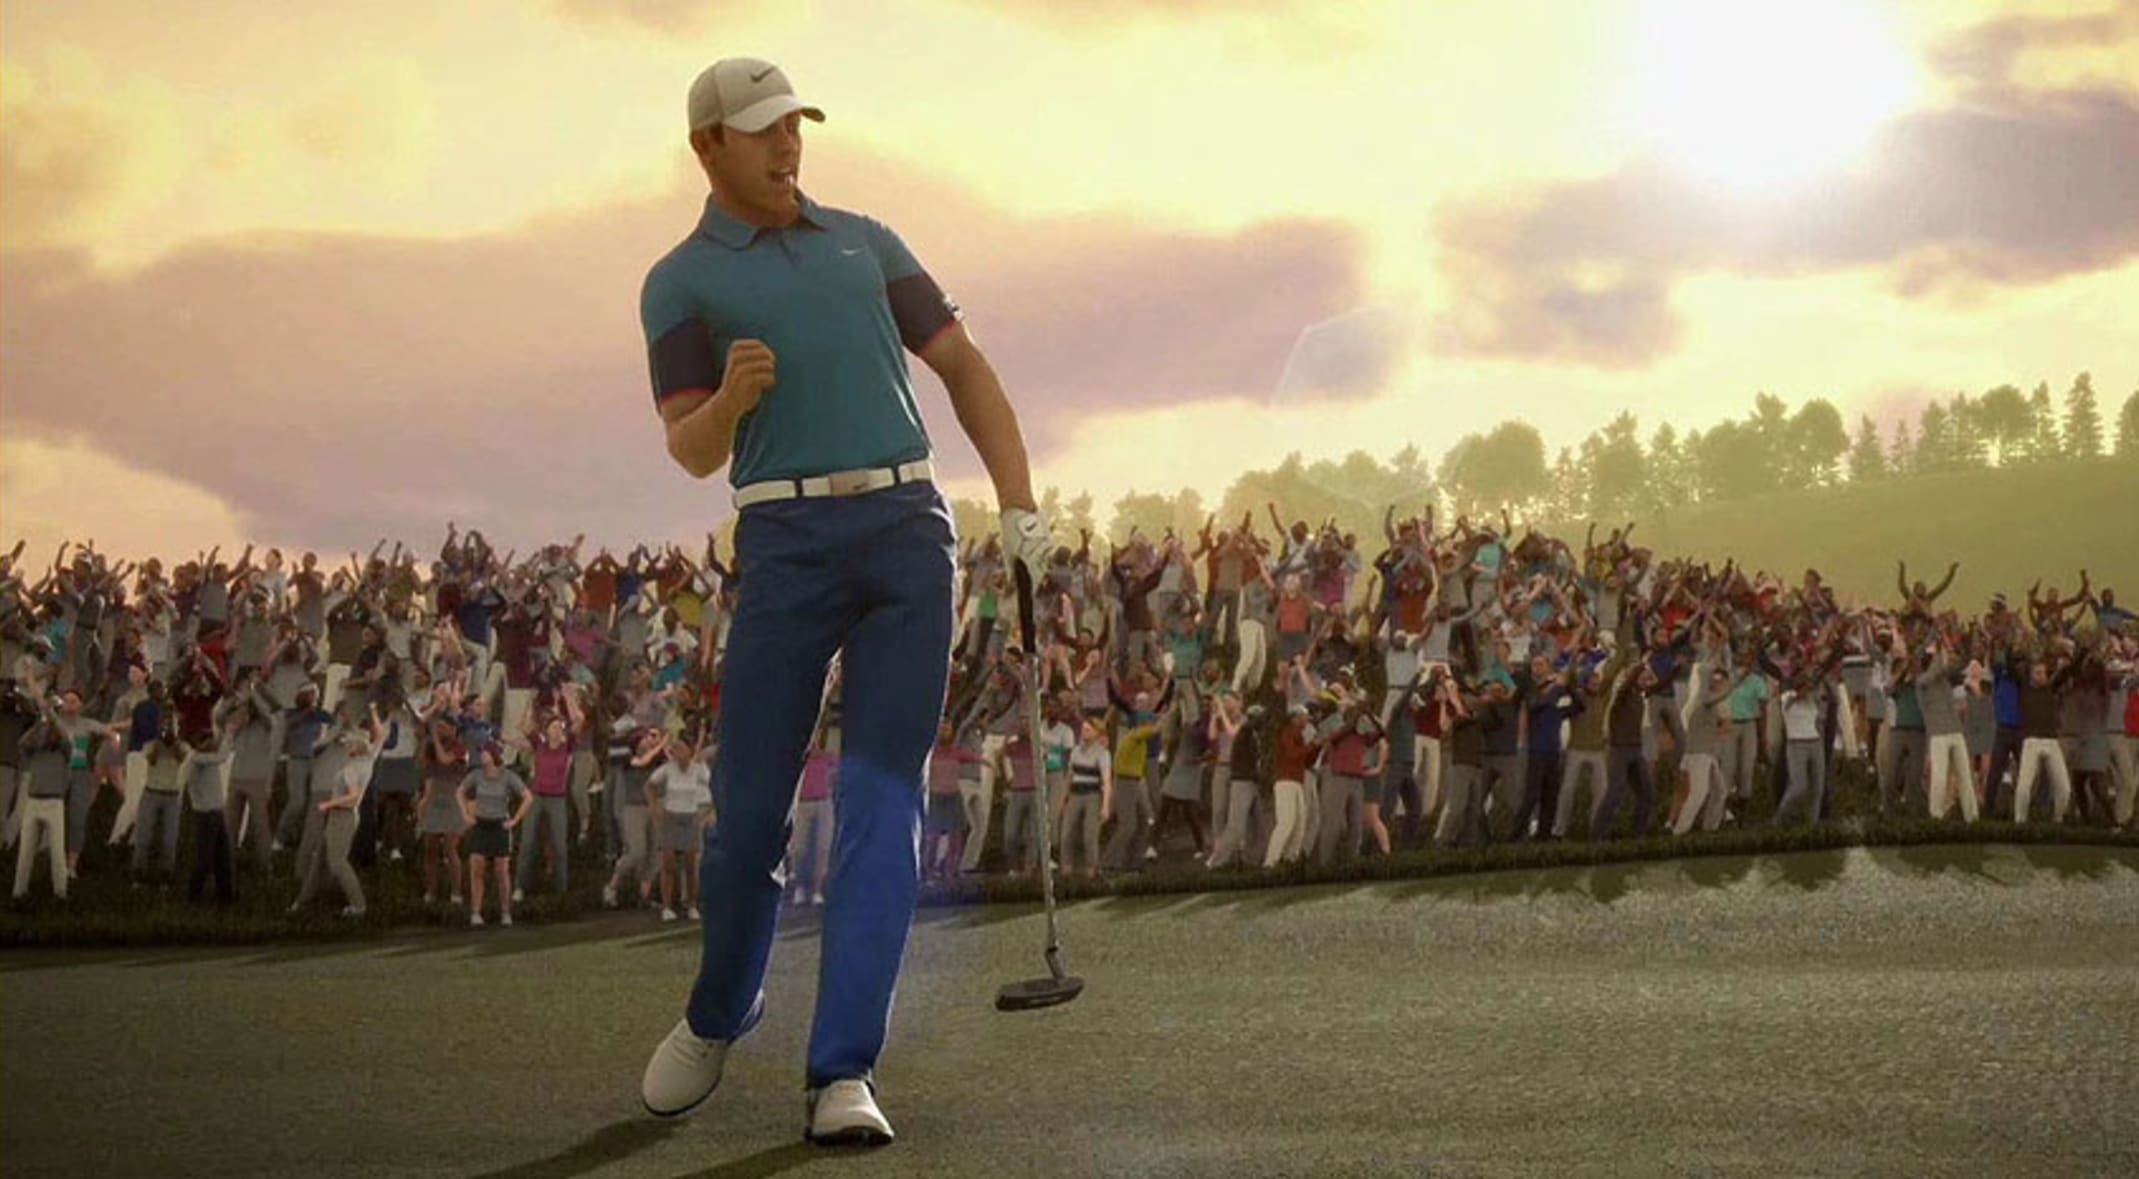 Rory Mcilroy Pga Tour 2020 Release Date EA SPORTS Rory McIlroy PGA TOUR now available